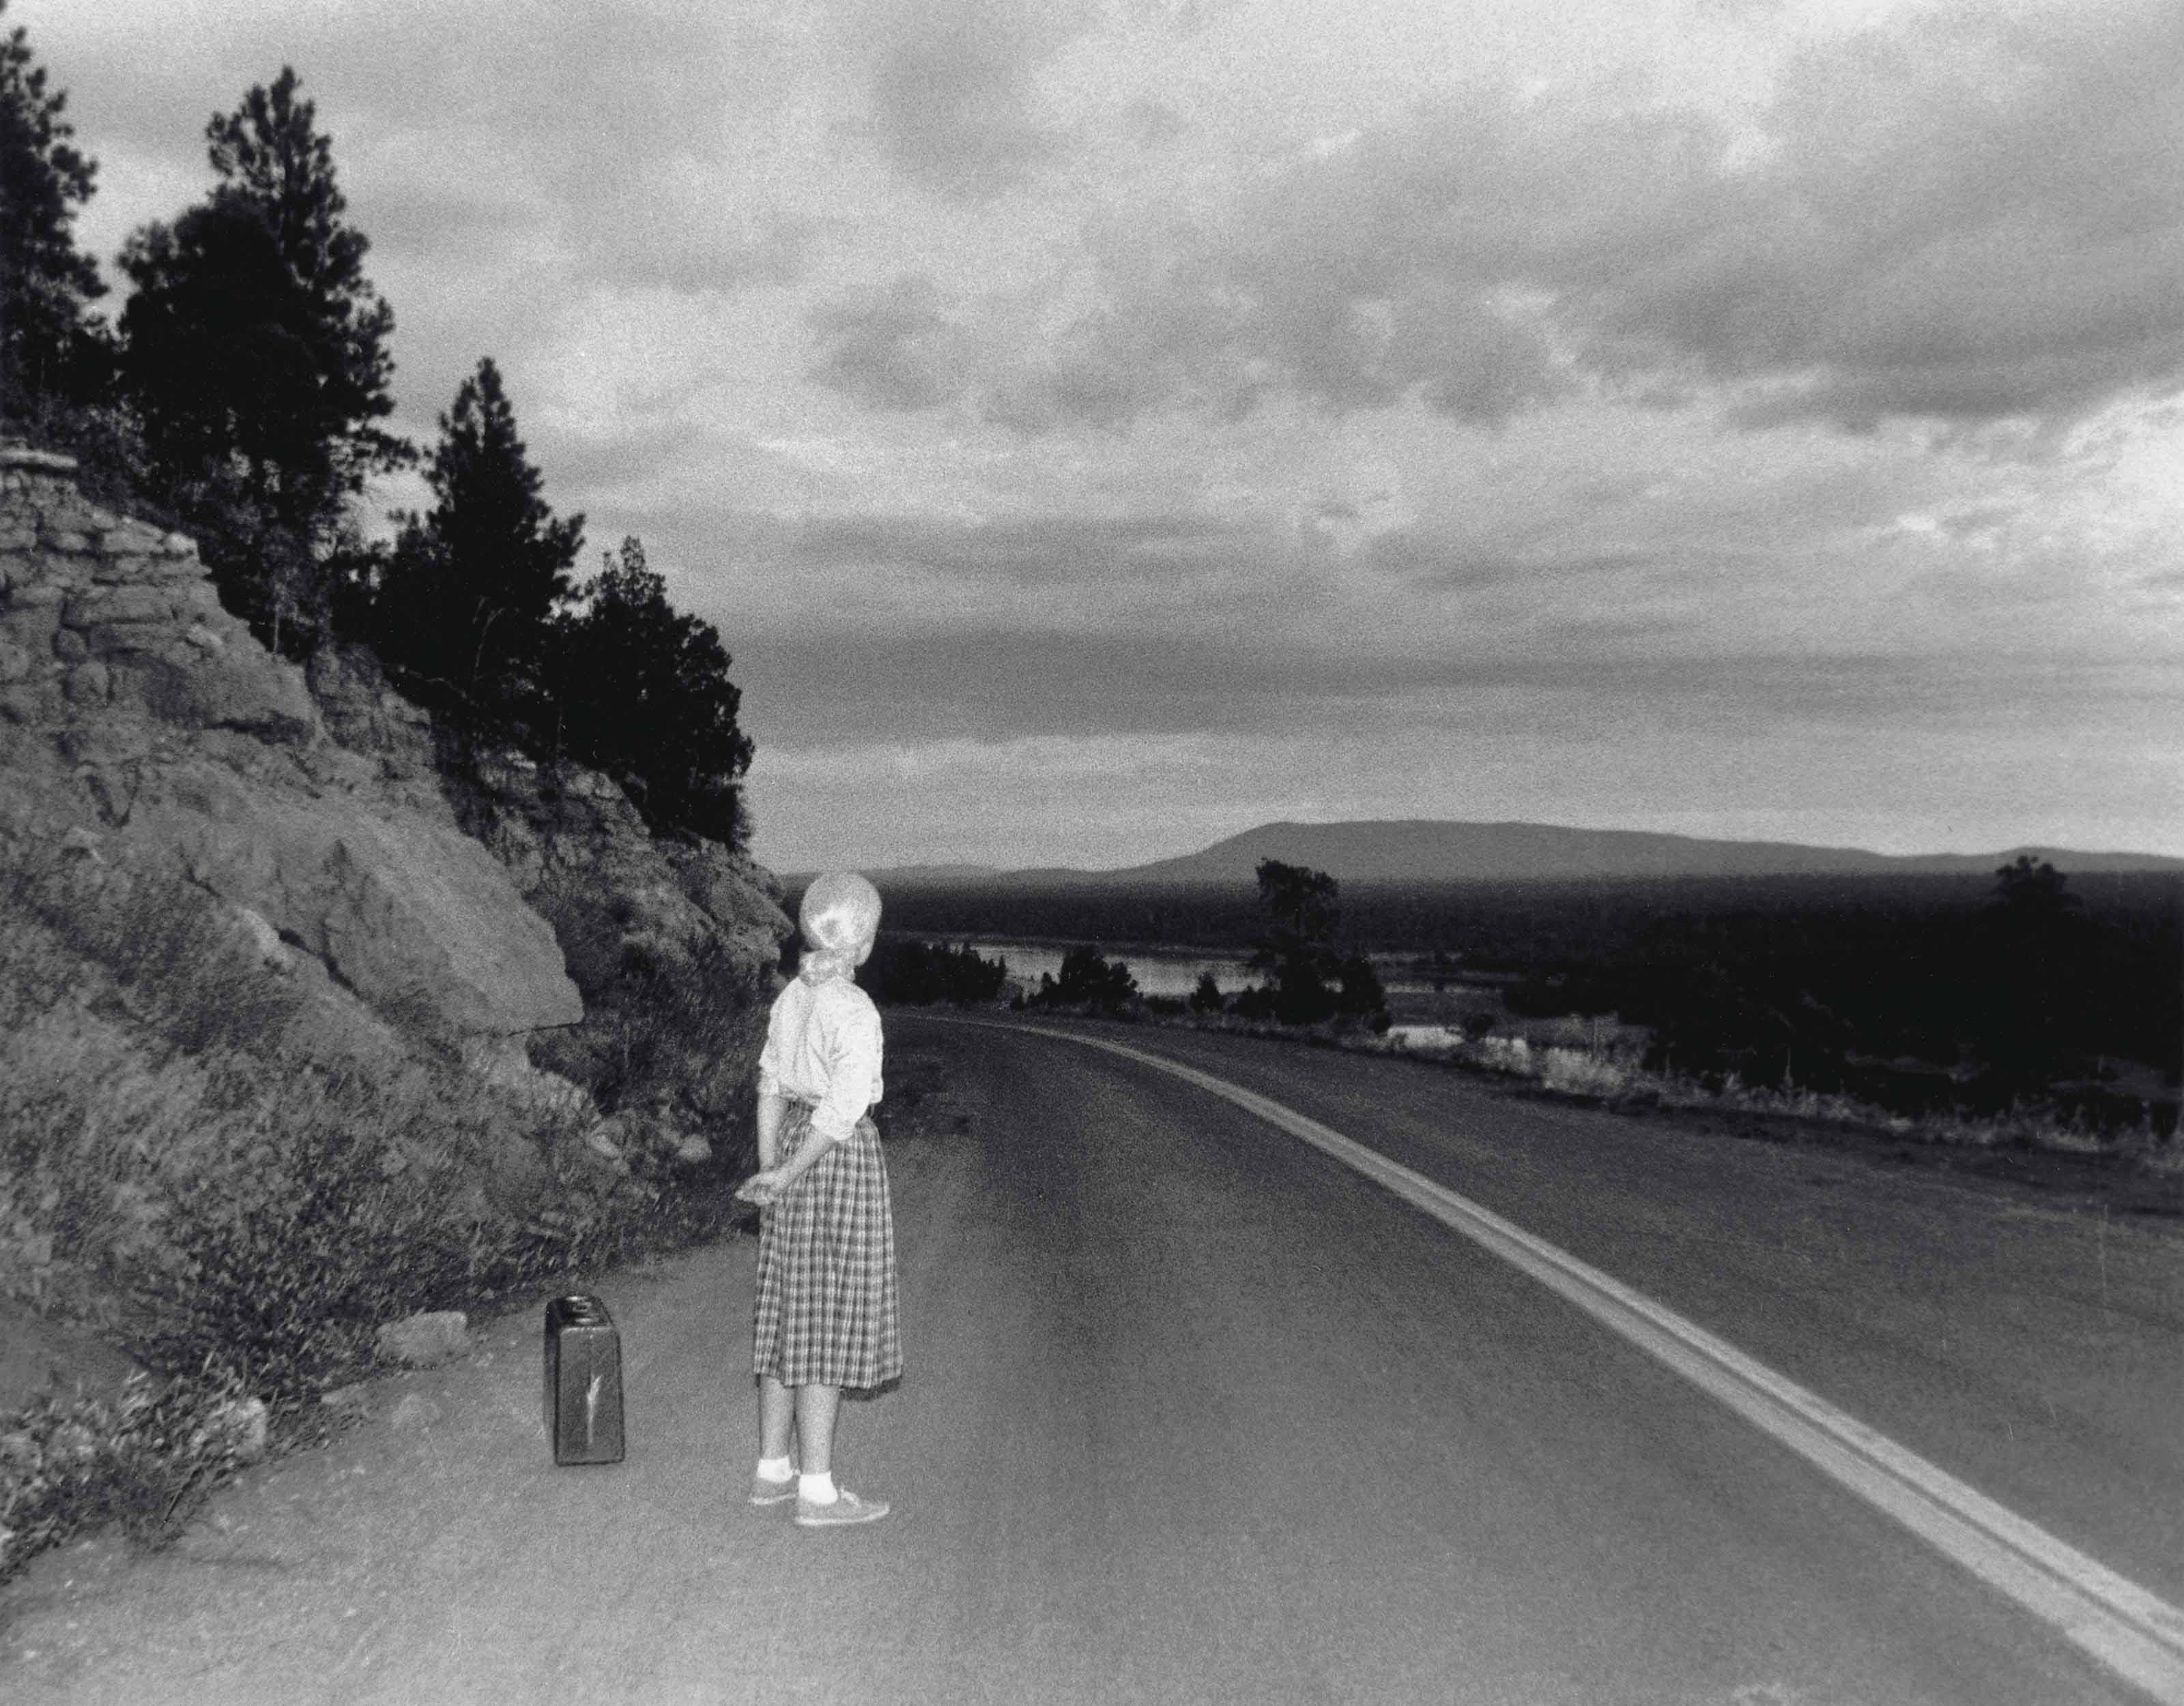 CINDY SHERMAN (B. 1954)